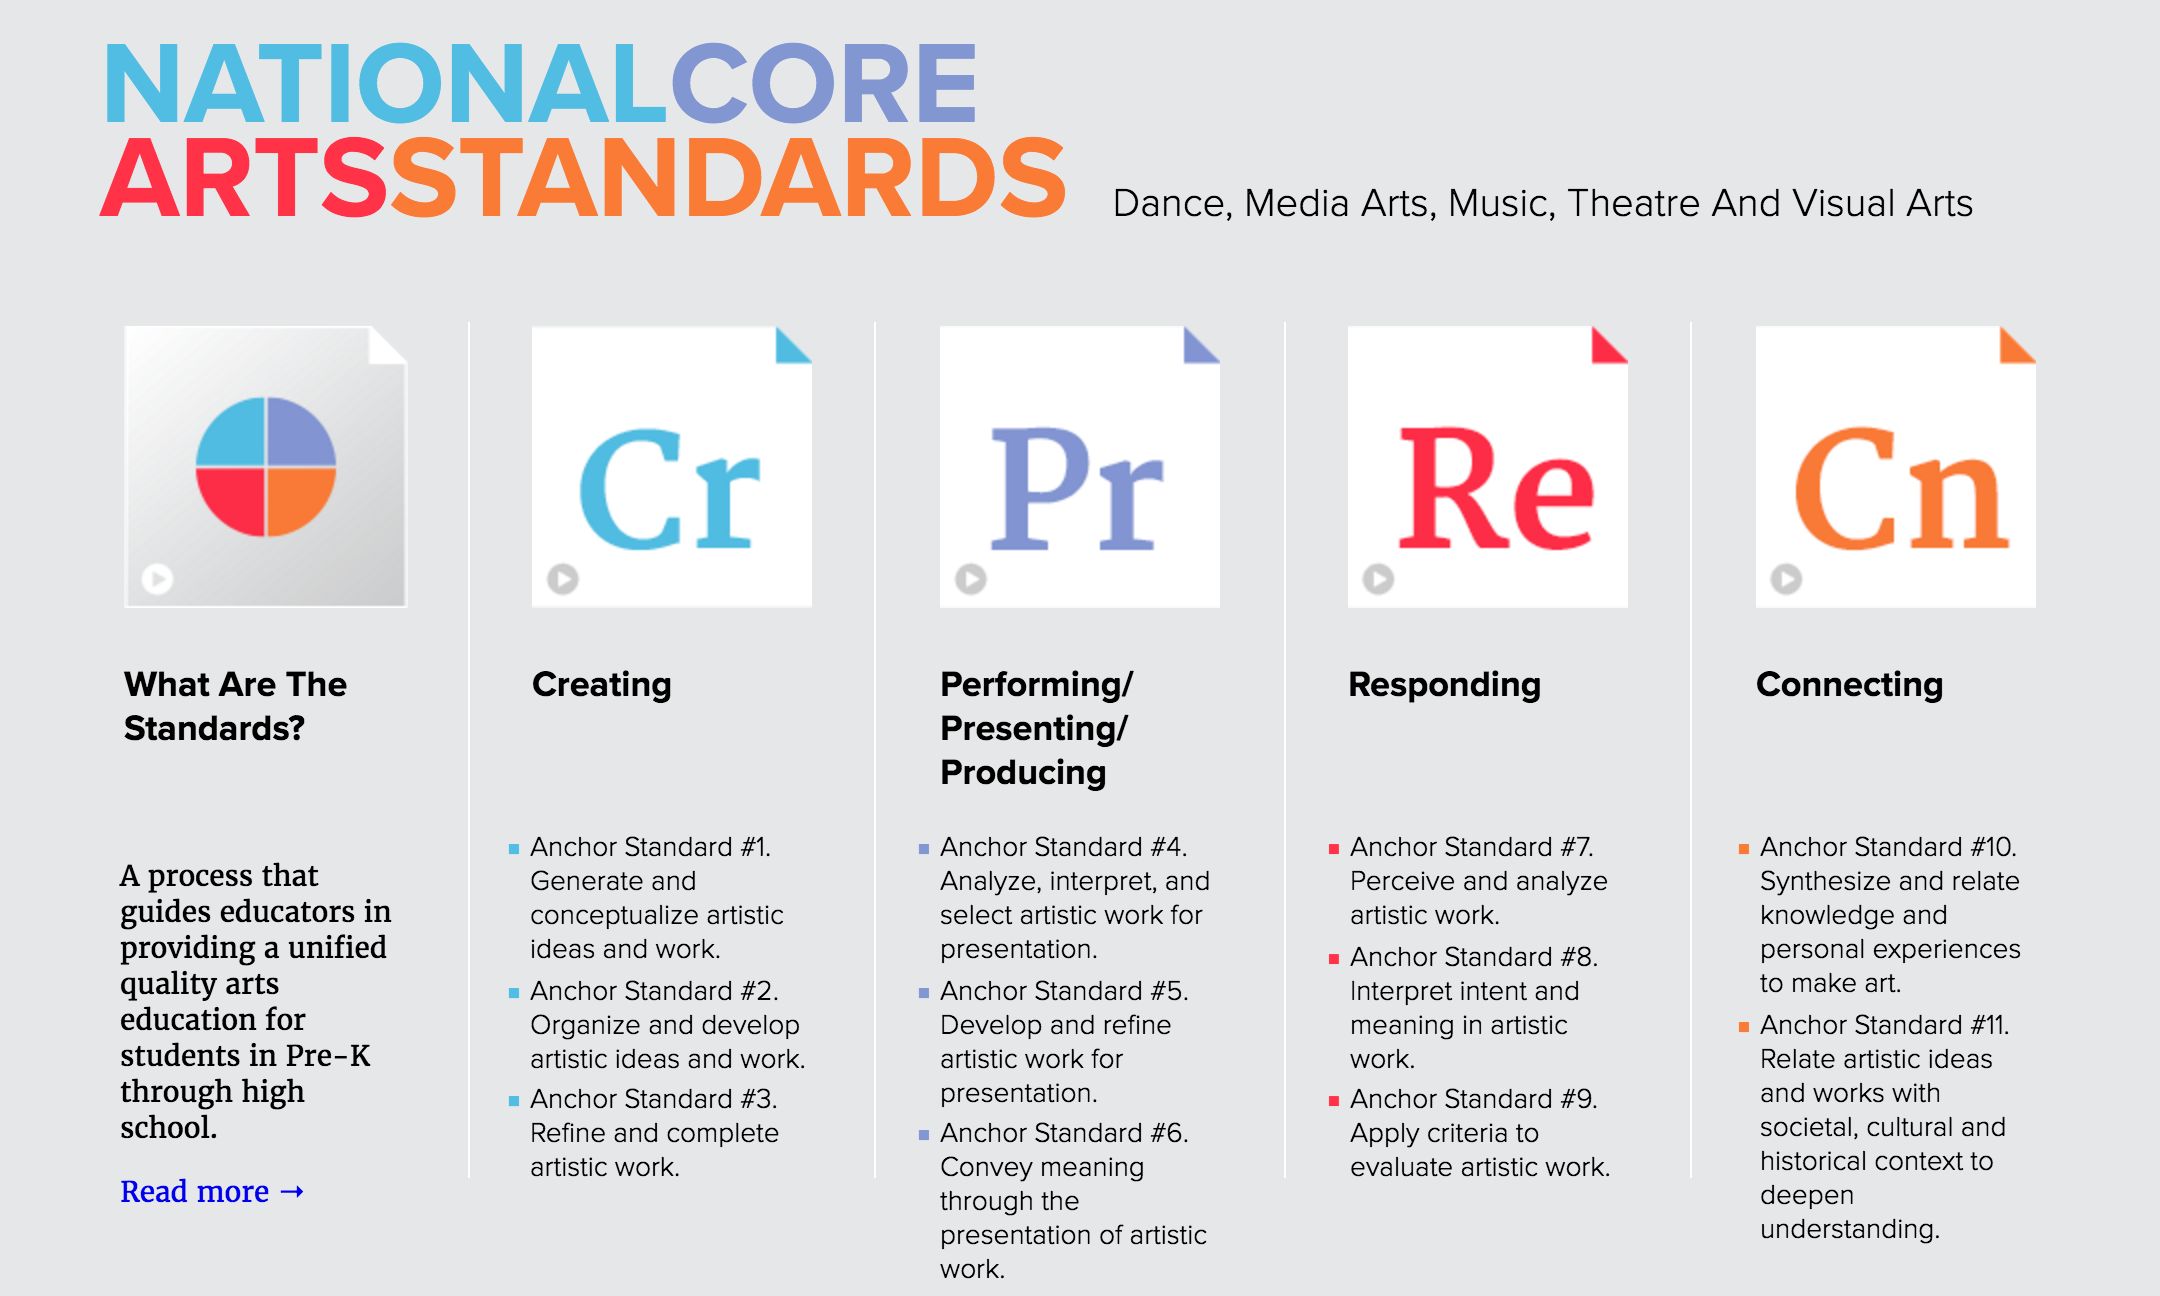 Make Arts Education Standard >> Media Arts Intentionally Excluded From California Arts Standards